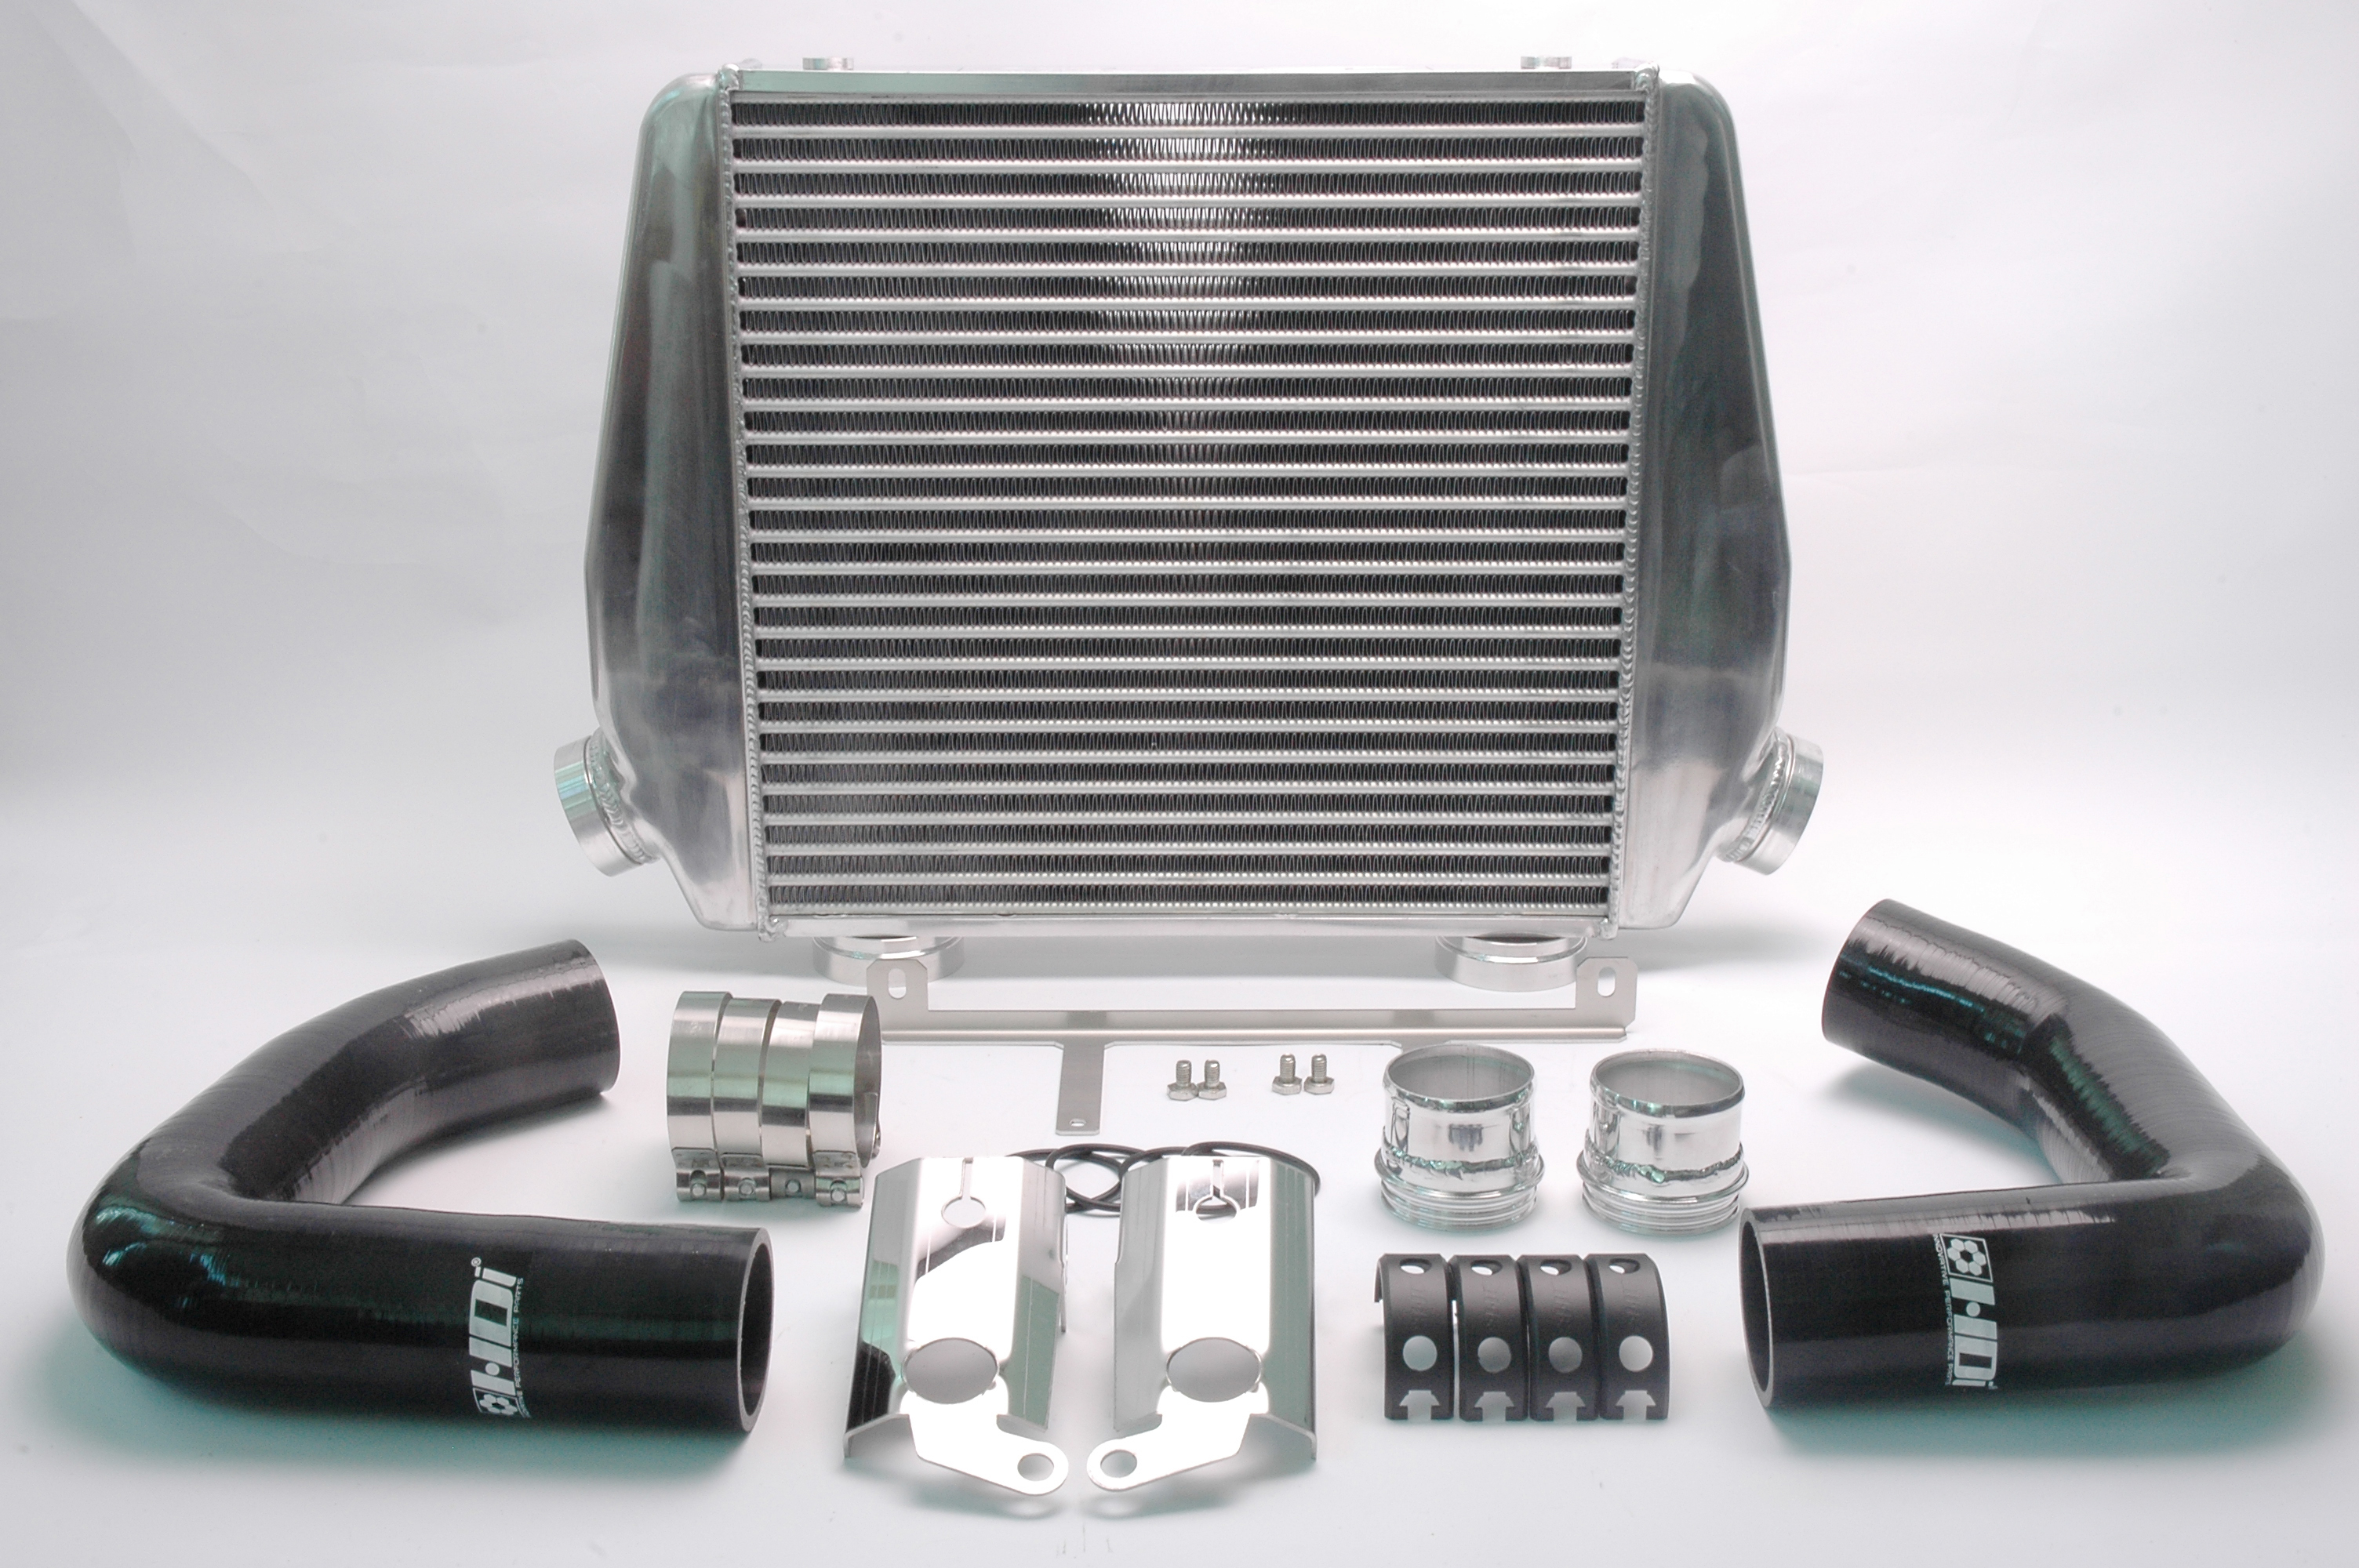 HDi FG XR6 GT2 440 S  INTERCOOLER KIT (8).jpg